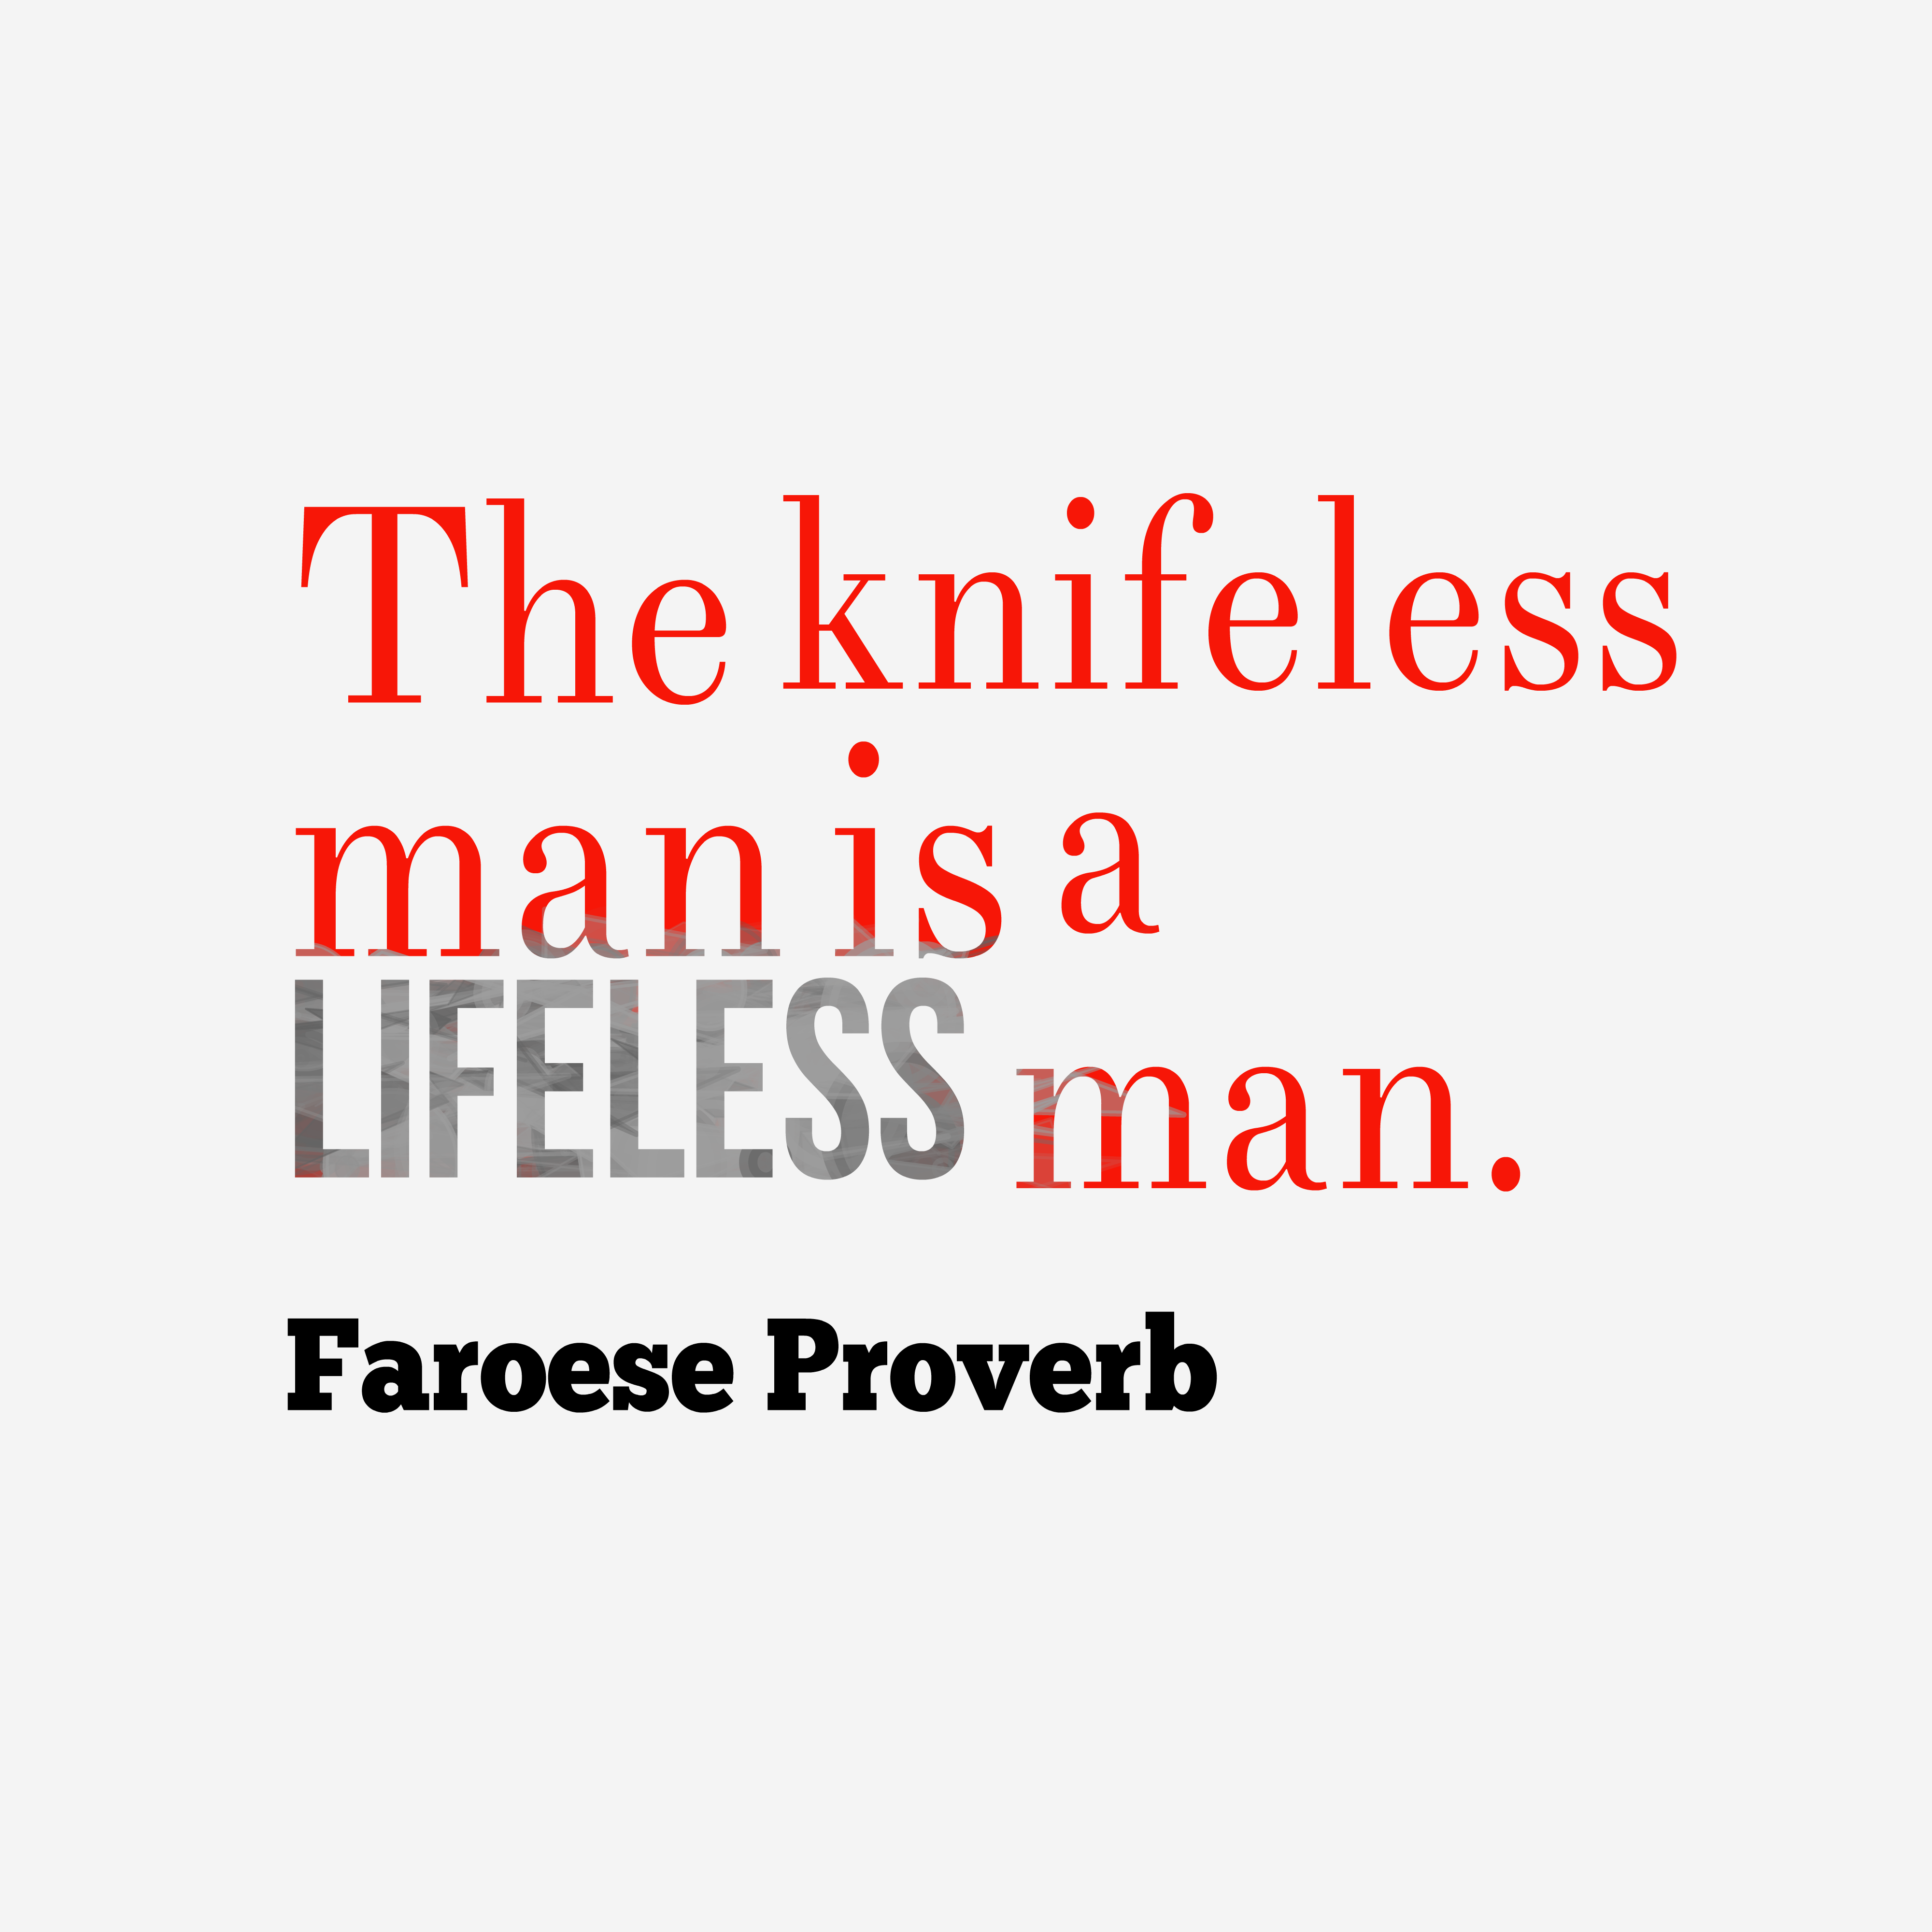 Quotes image of The knifeless man is a lifeless man.